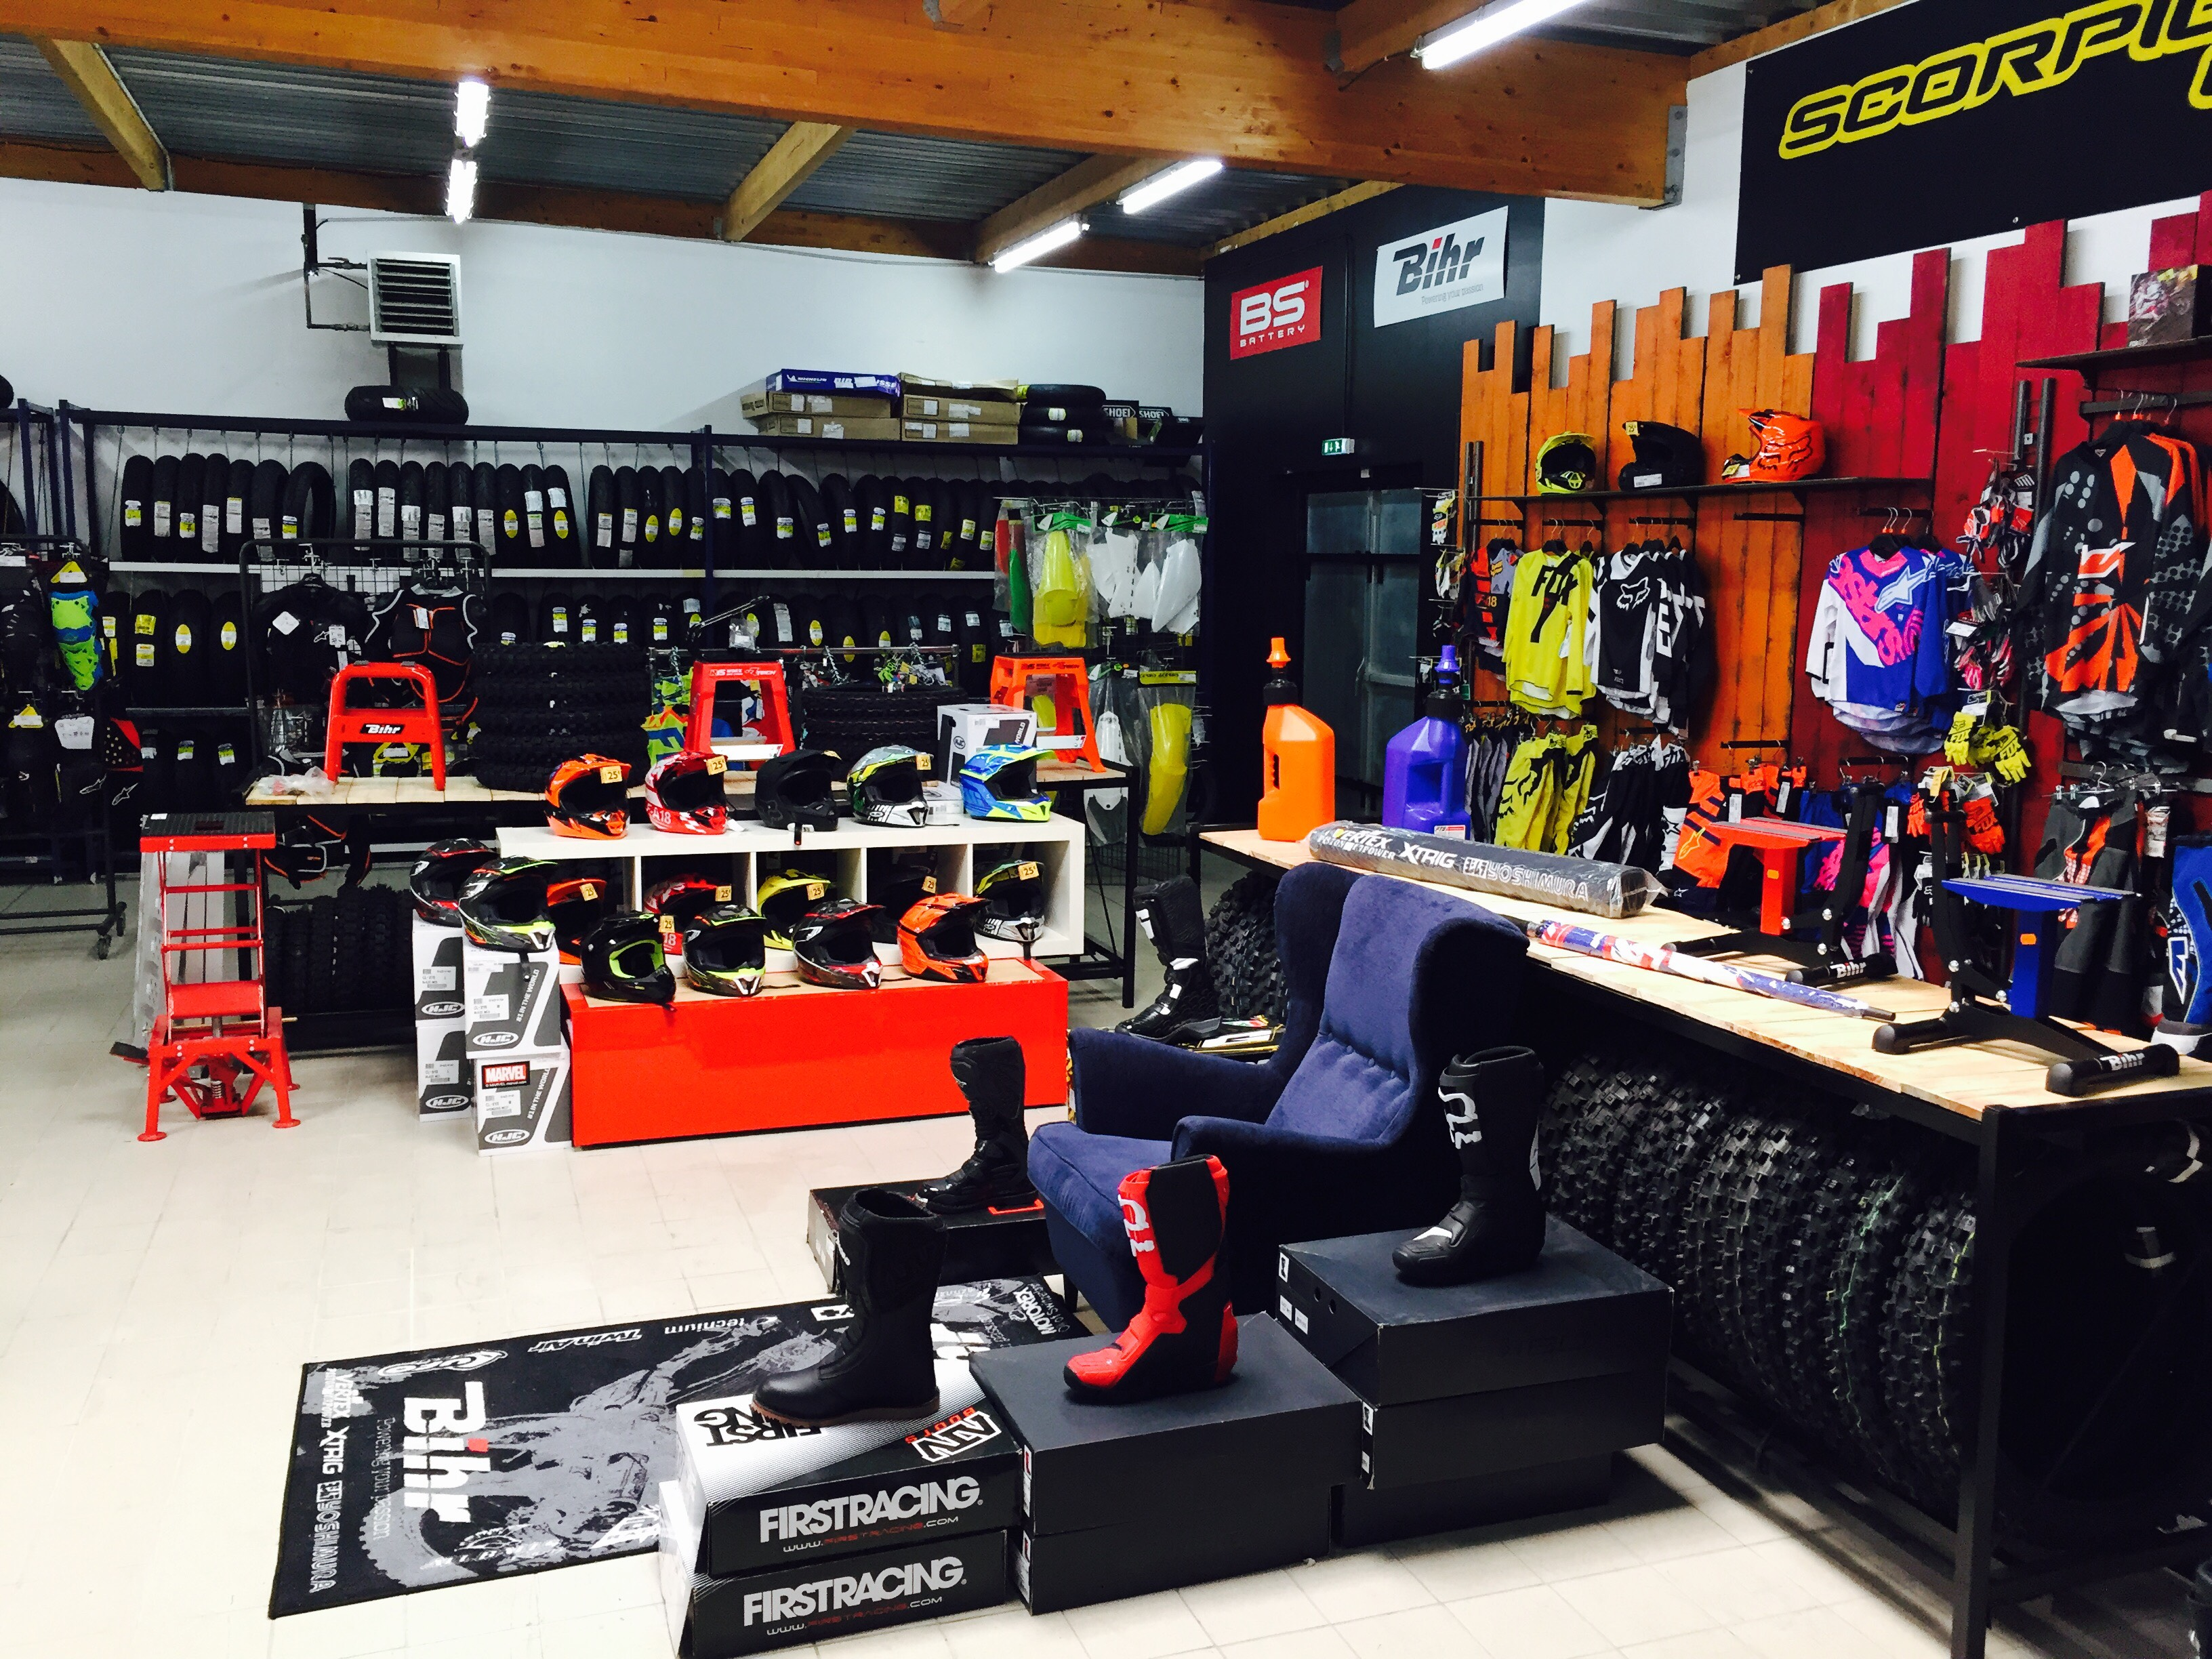 Magasin equipement moto 63